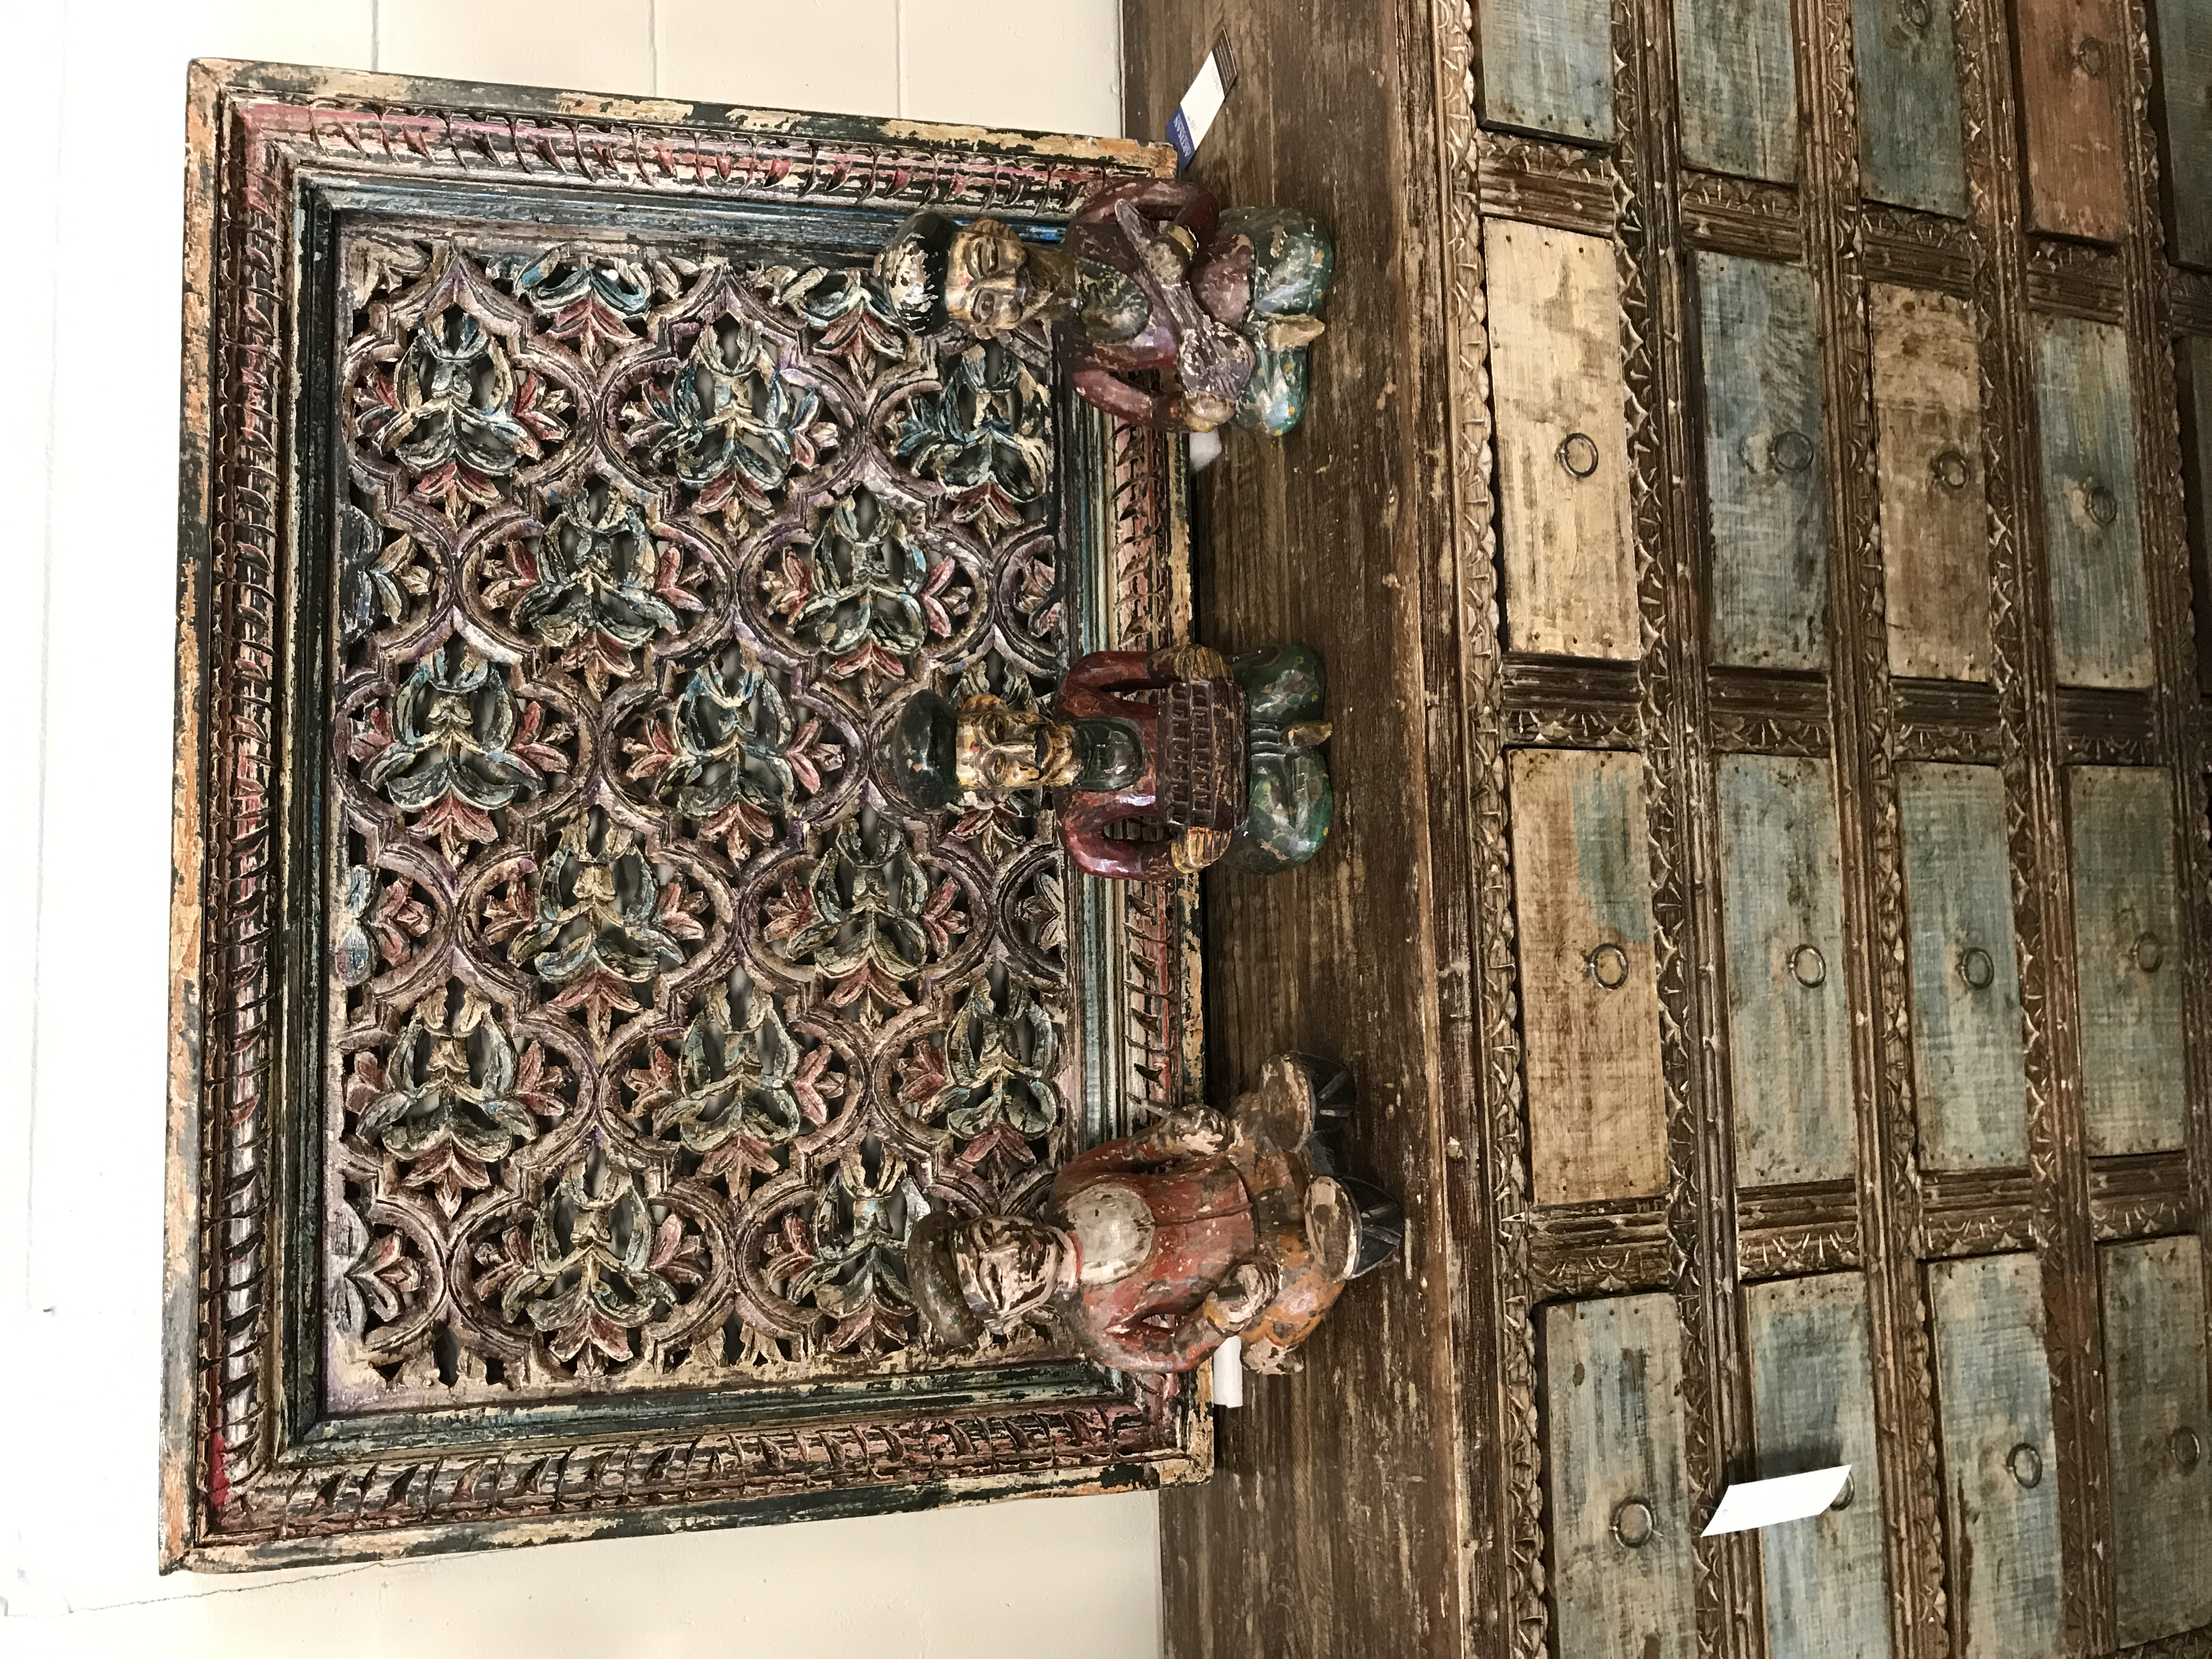 Carved Wooden Wall Decor